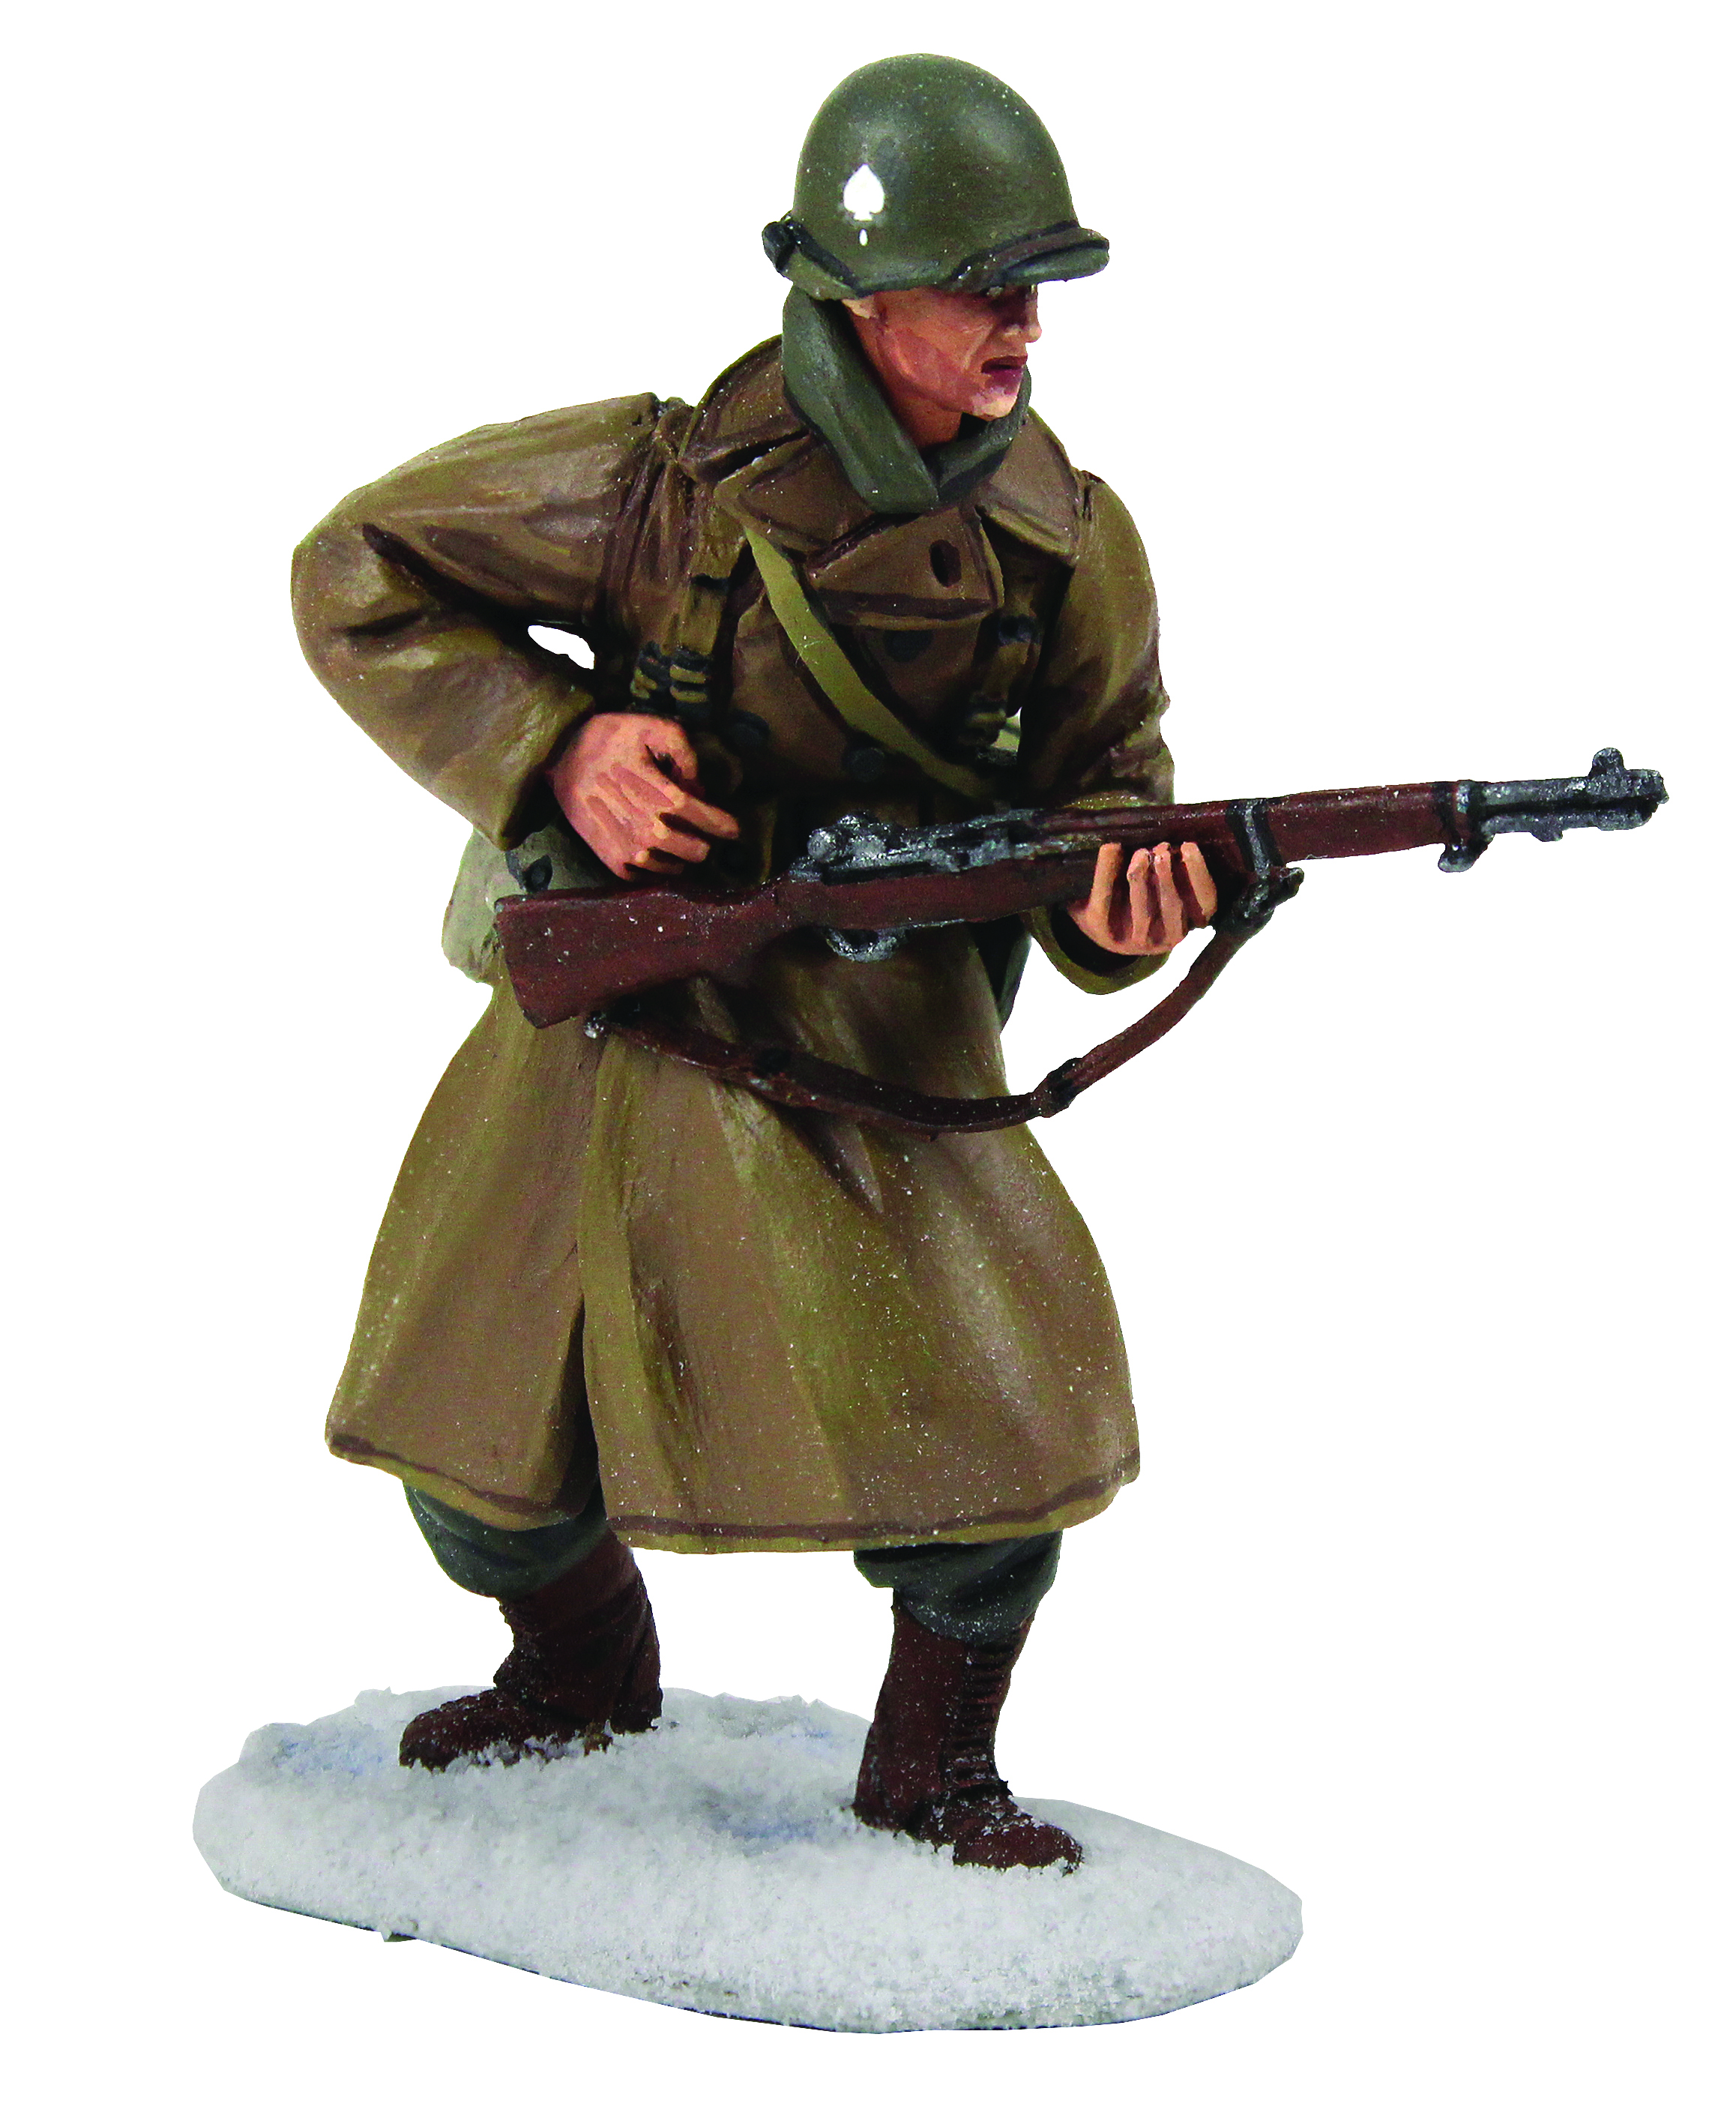 U.S 101st Airborne Infantry Wearing Overcoat Reaching for Ammo, Winter 1944-45 - 1 Piece Set in Clamshell Pack